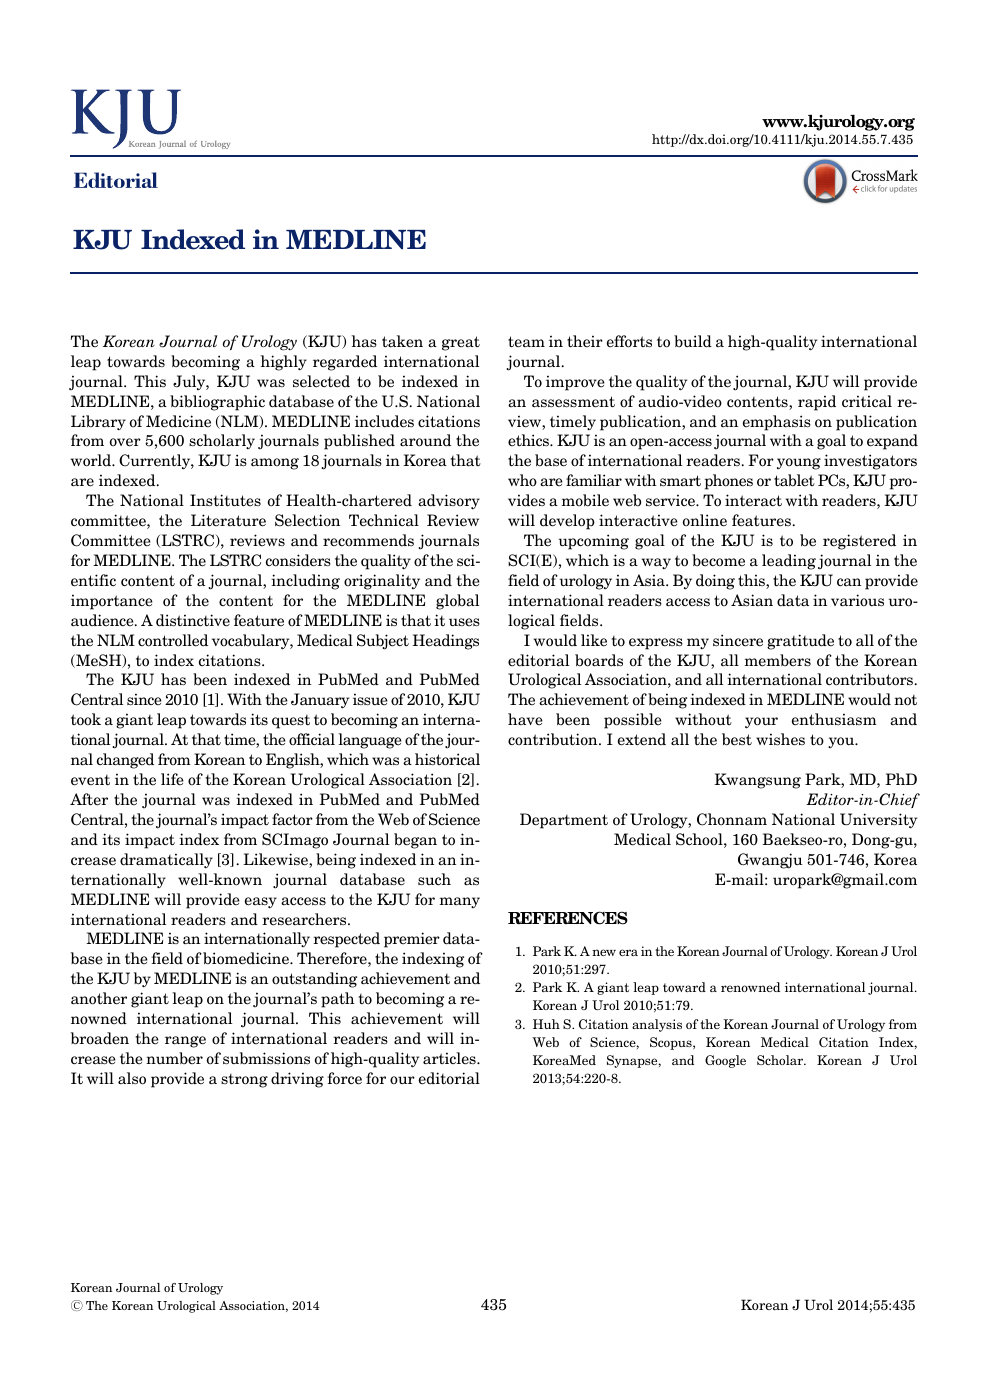 KJU Indexed in MEDLINE – topic of research paper in Political